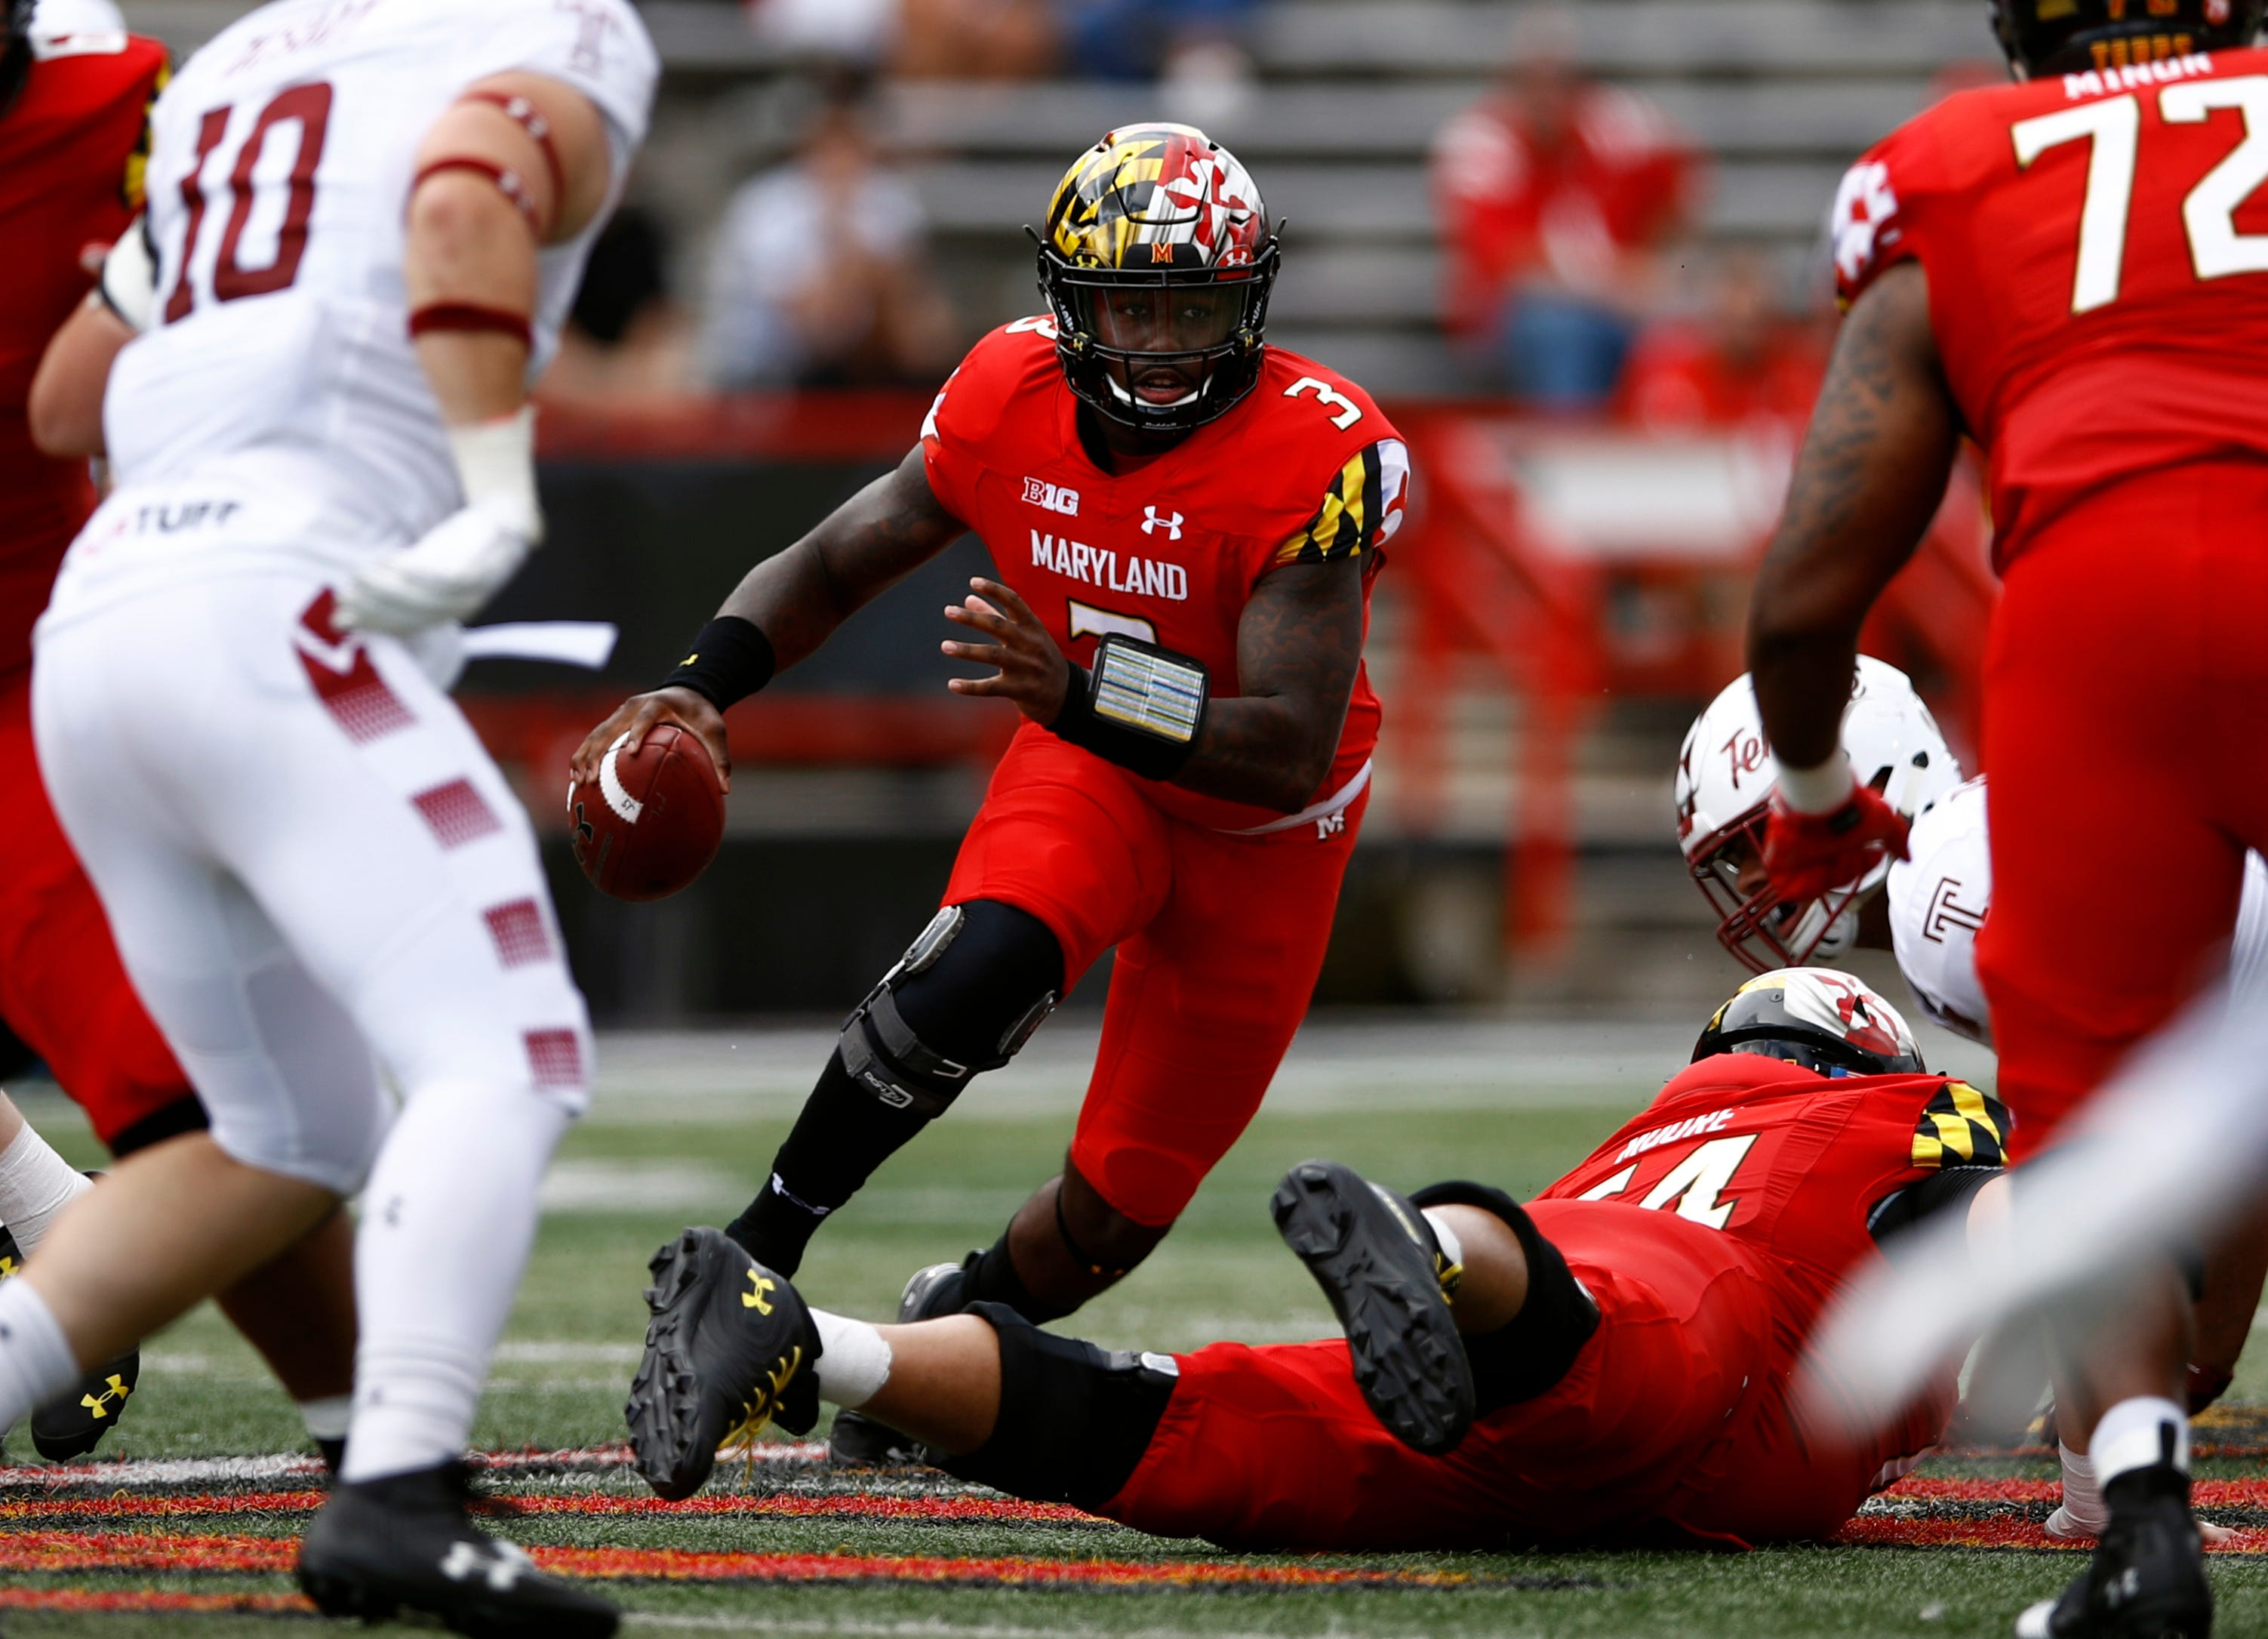 Maryland quarterback Tyrrell Pigrome is one of 11 players from Clay-Chalkville High.